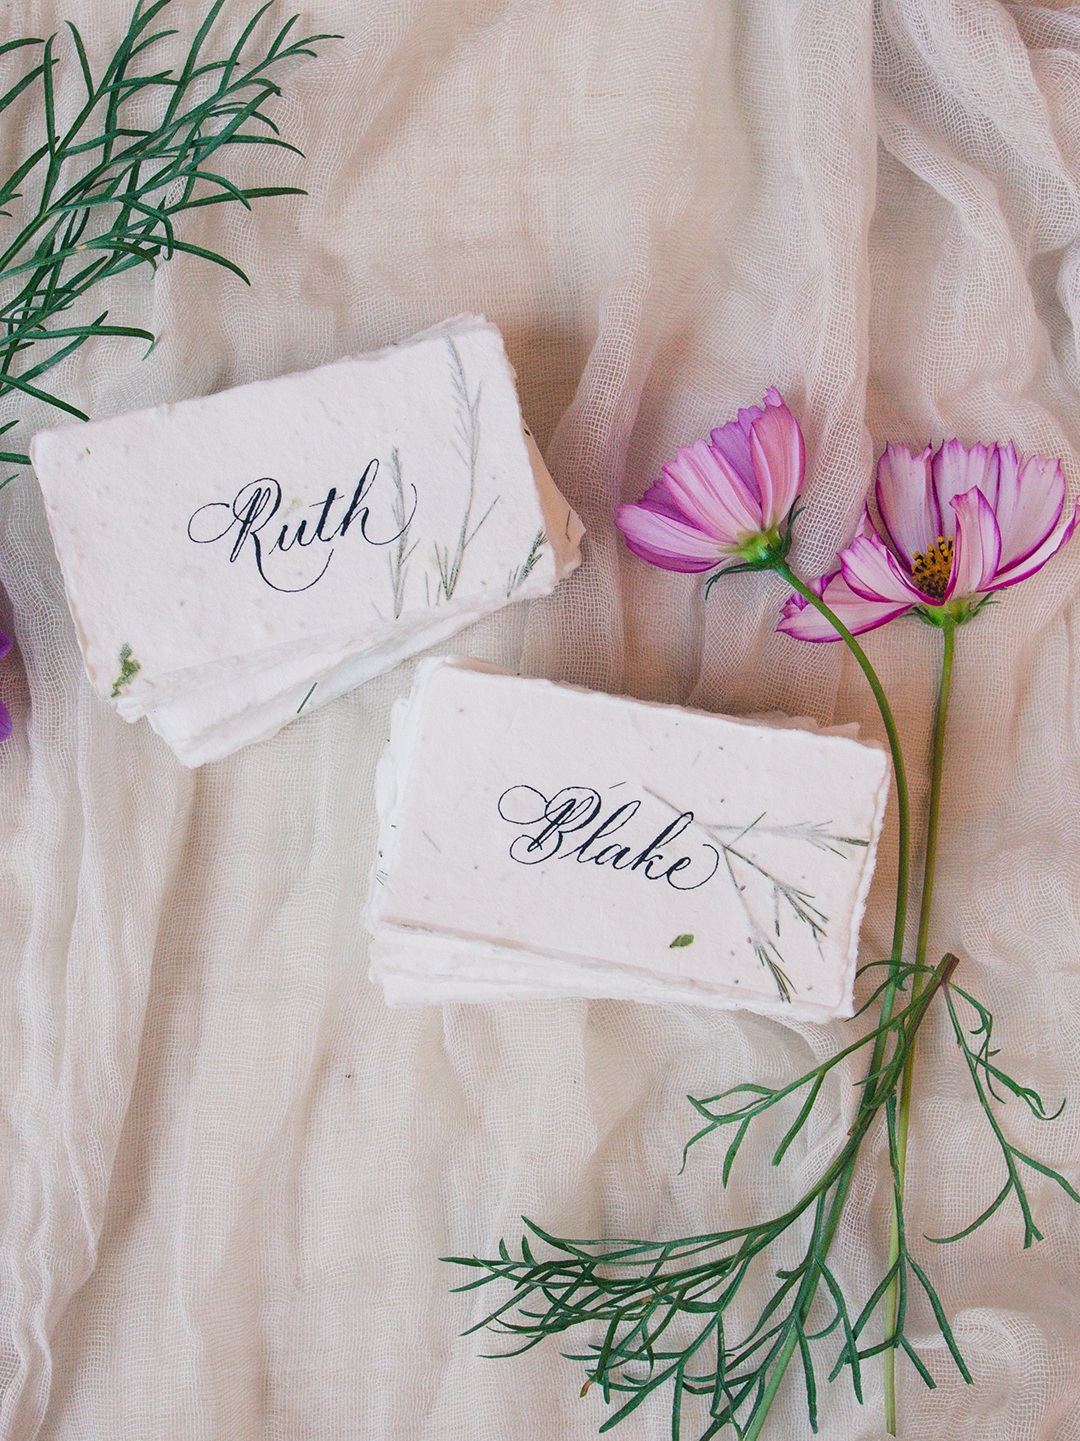 Day-of Design - Place cards, escort cards, menus, programs and more.